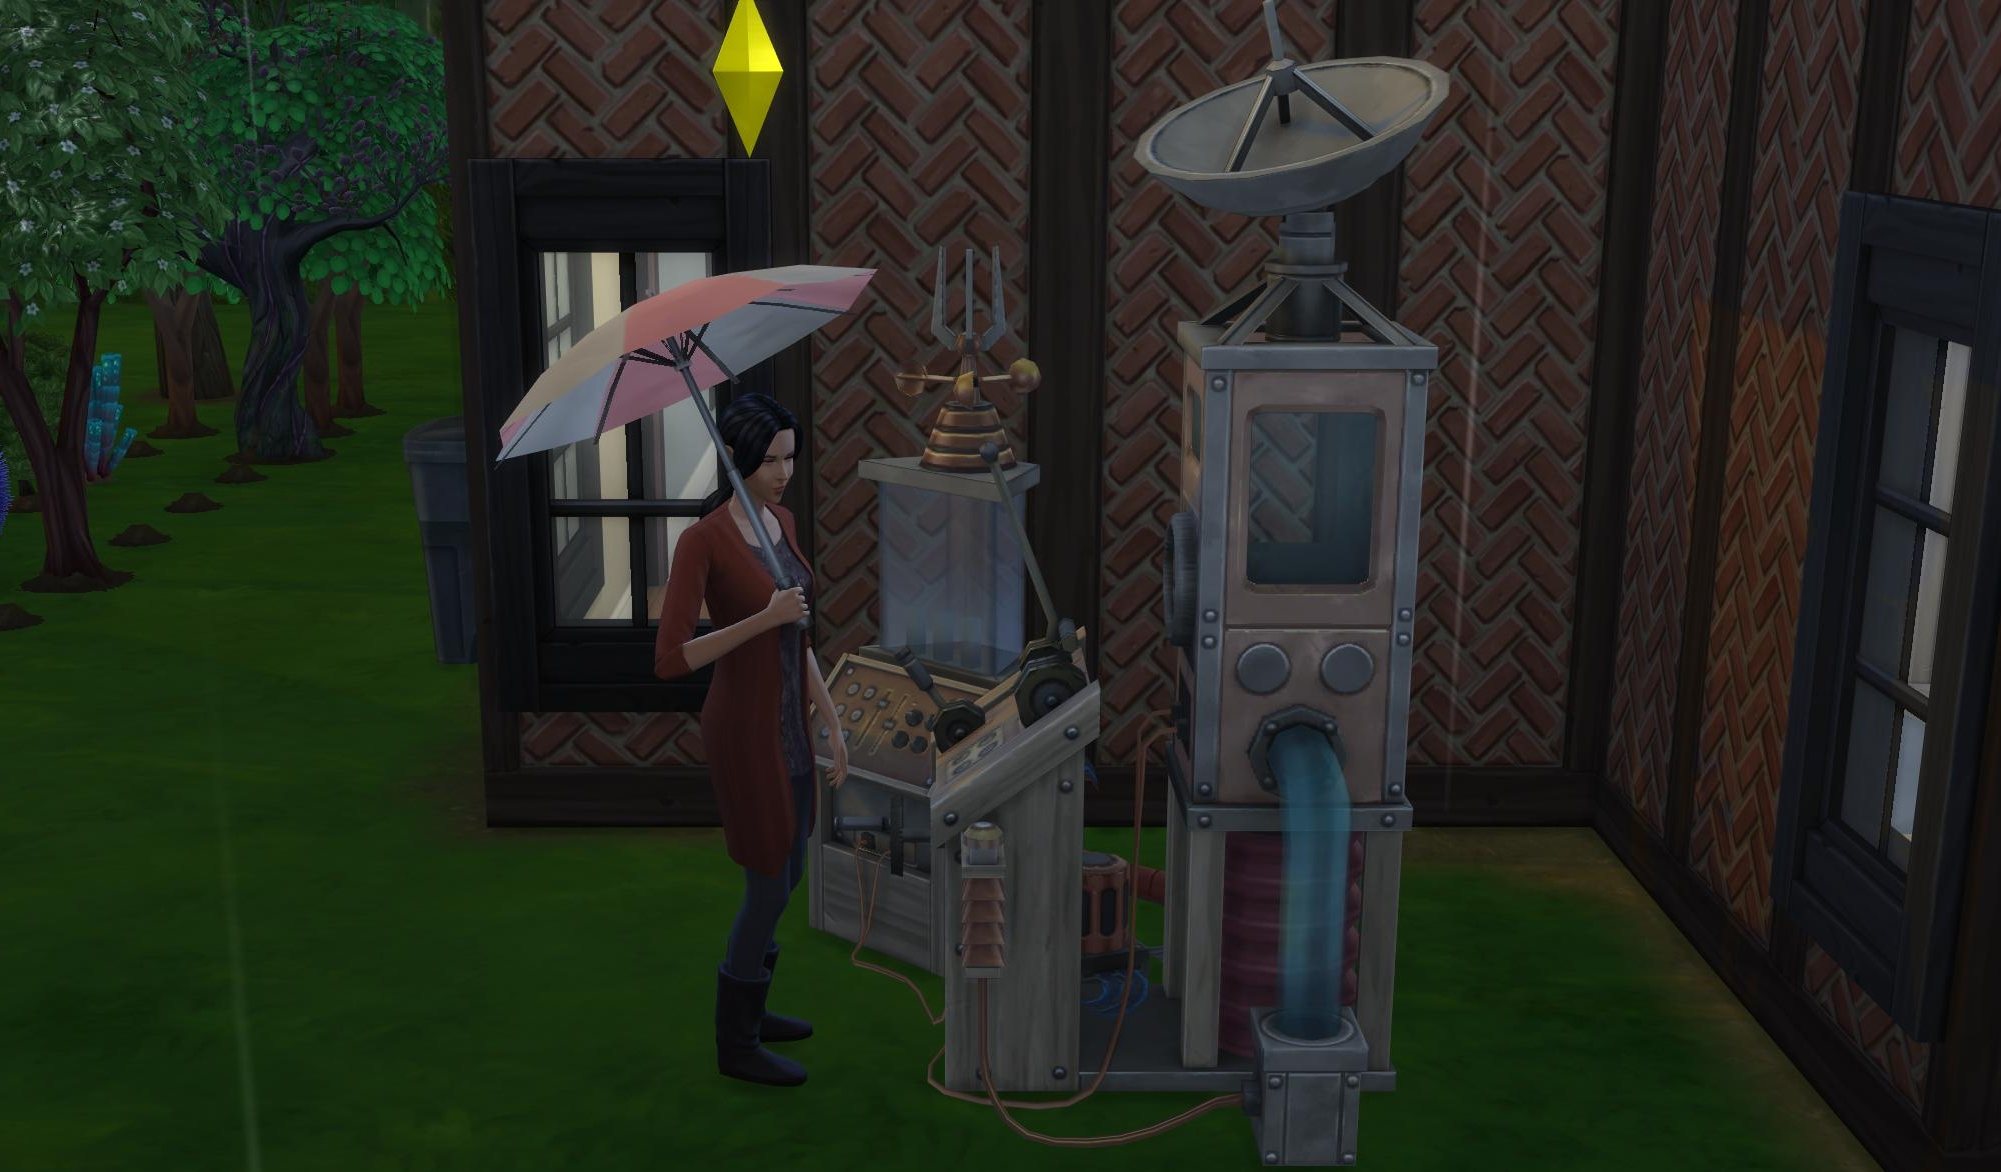 How to change the weather in The Sims 4